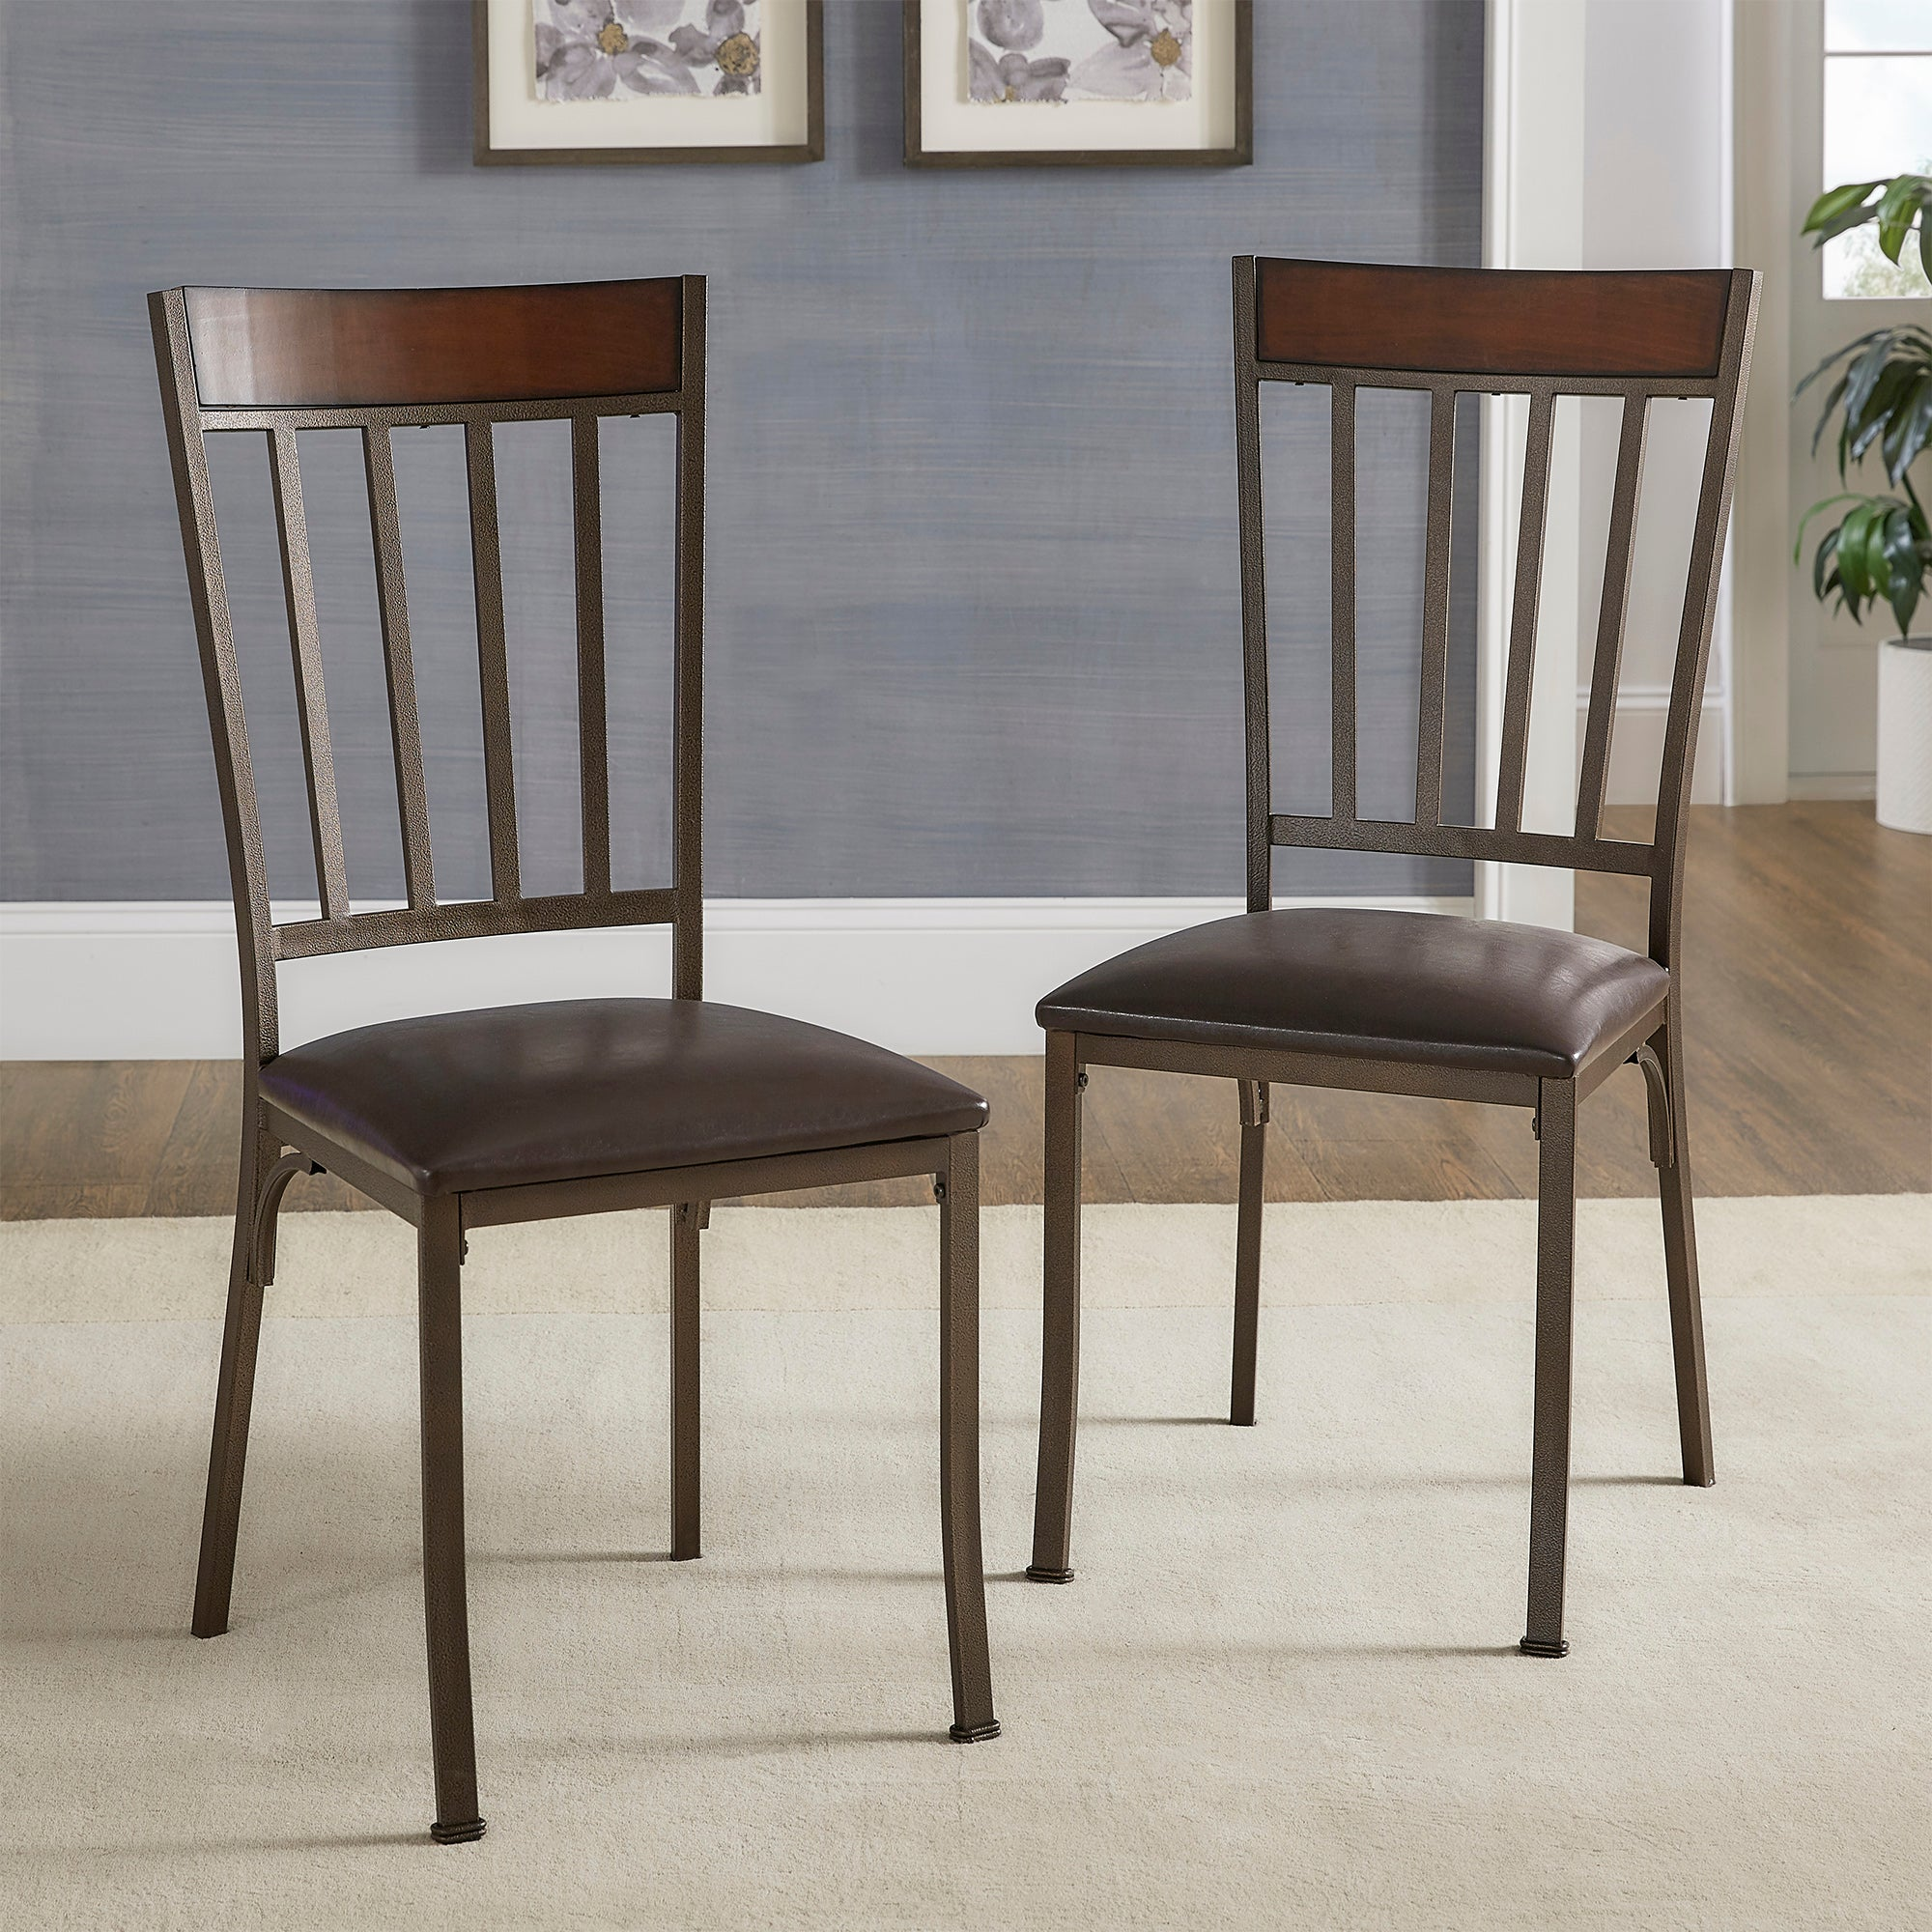 Antique Bronze Finish Dining Chairs (Set of 2)